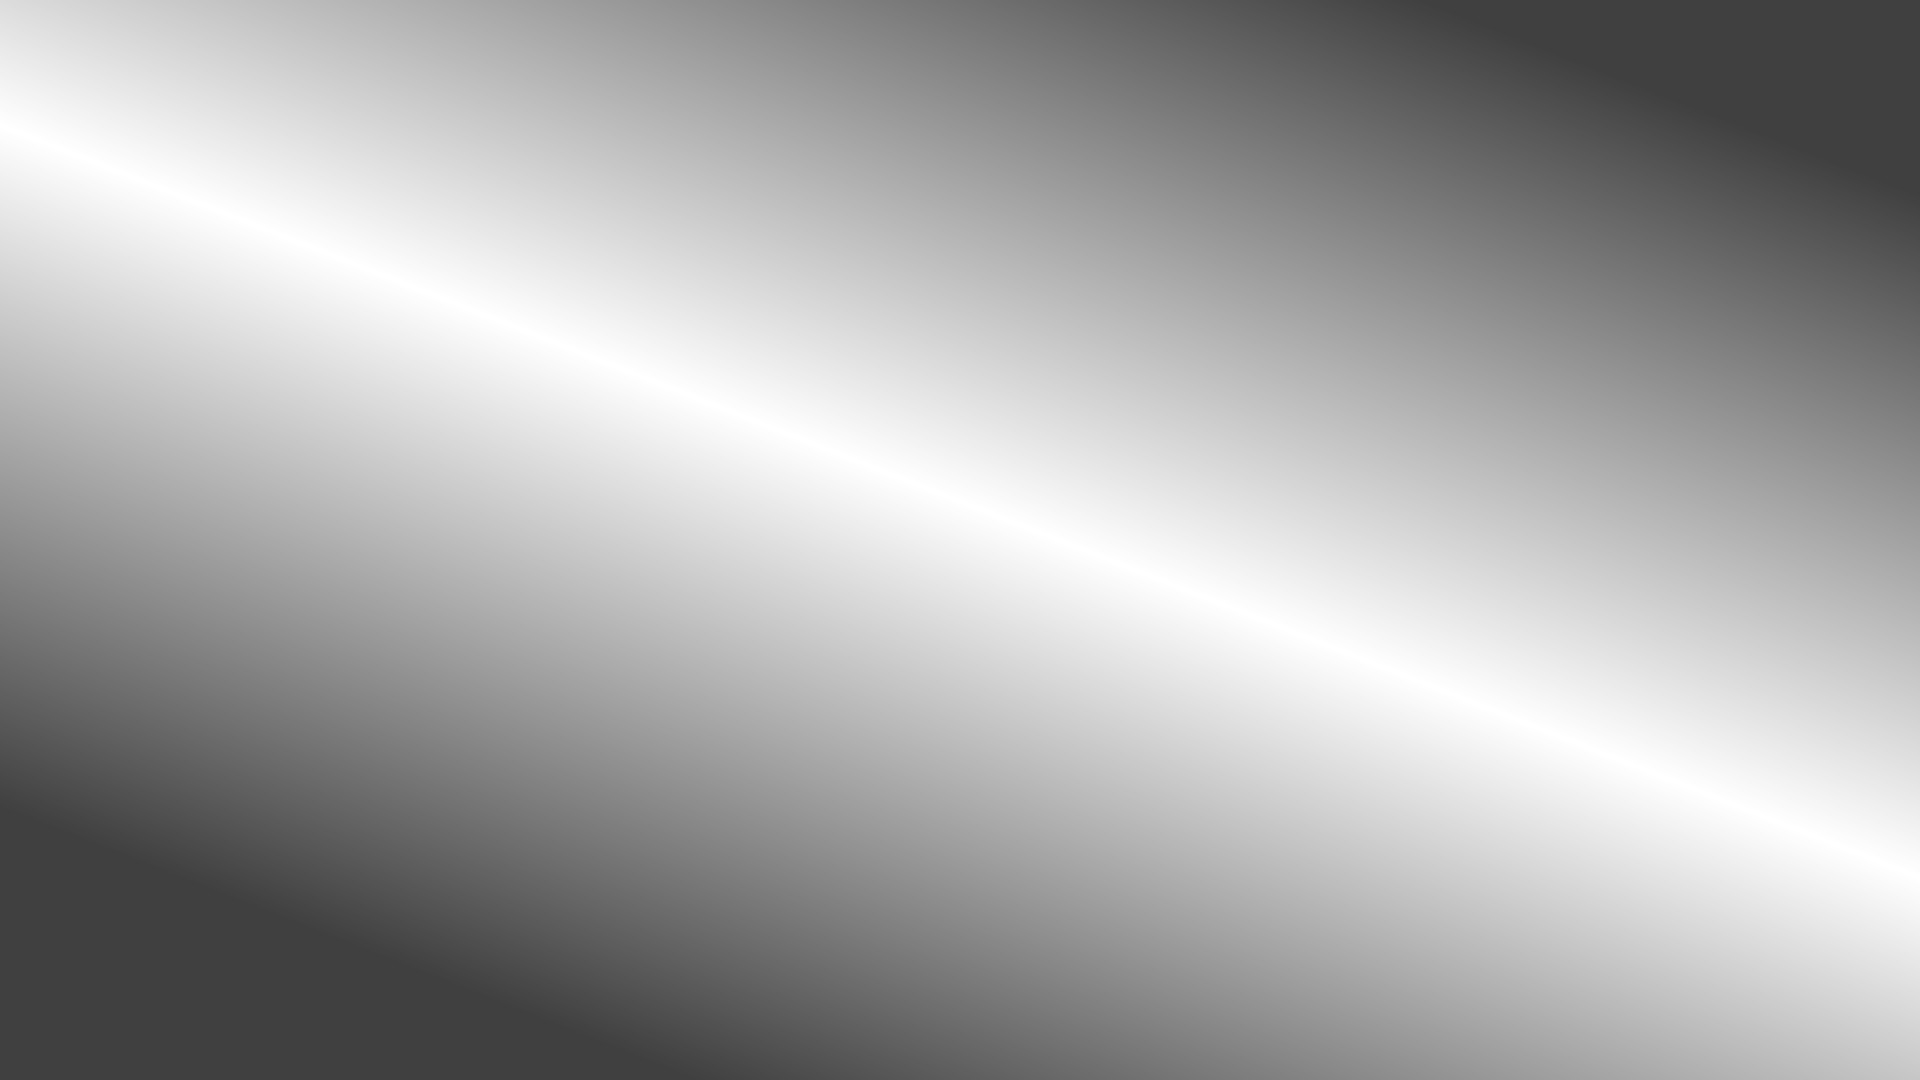 desktop wallpaper silver gradient background speed 1920×1080